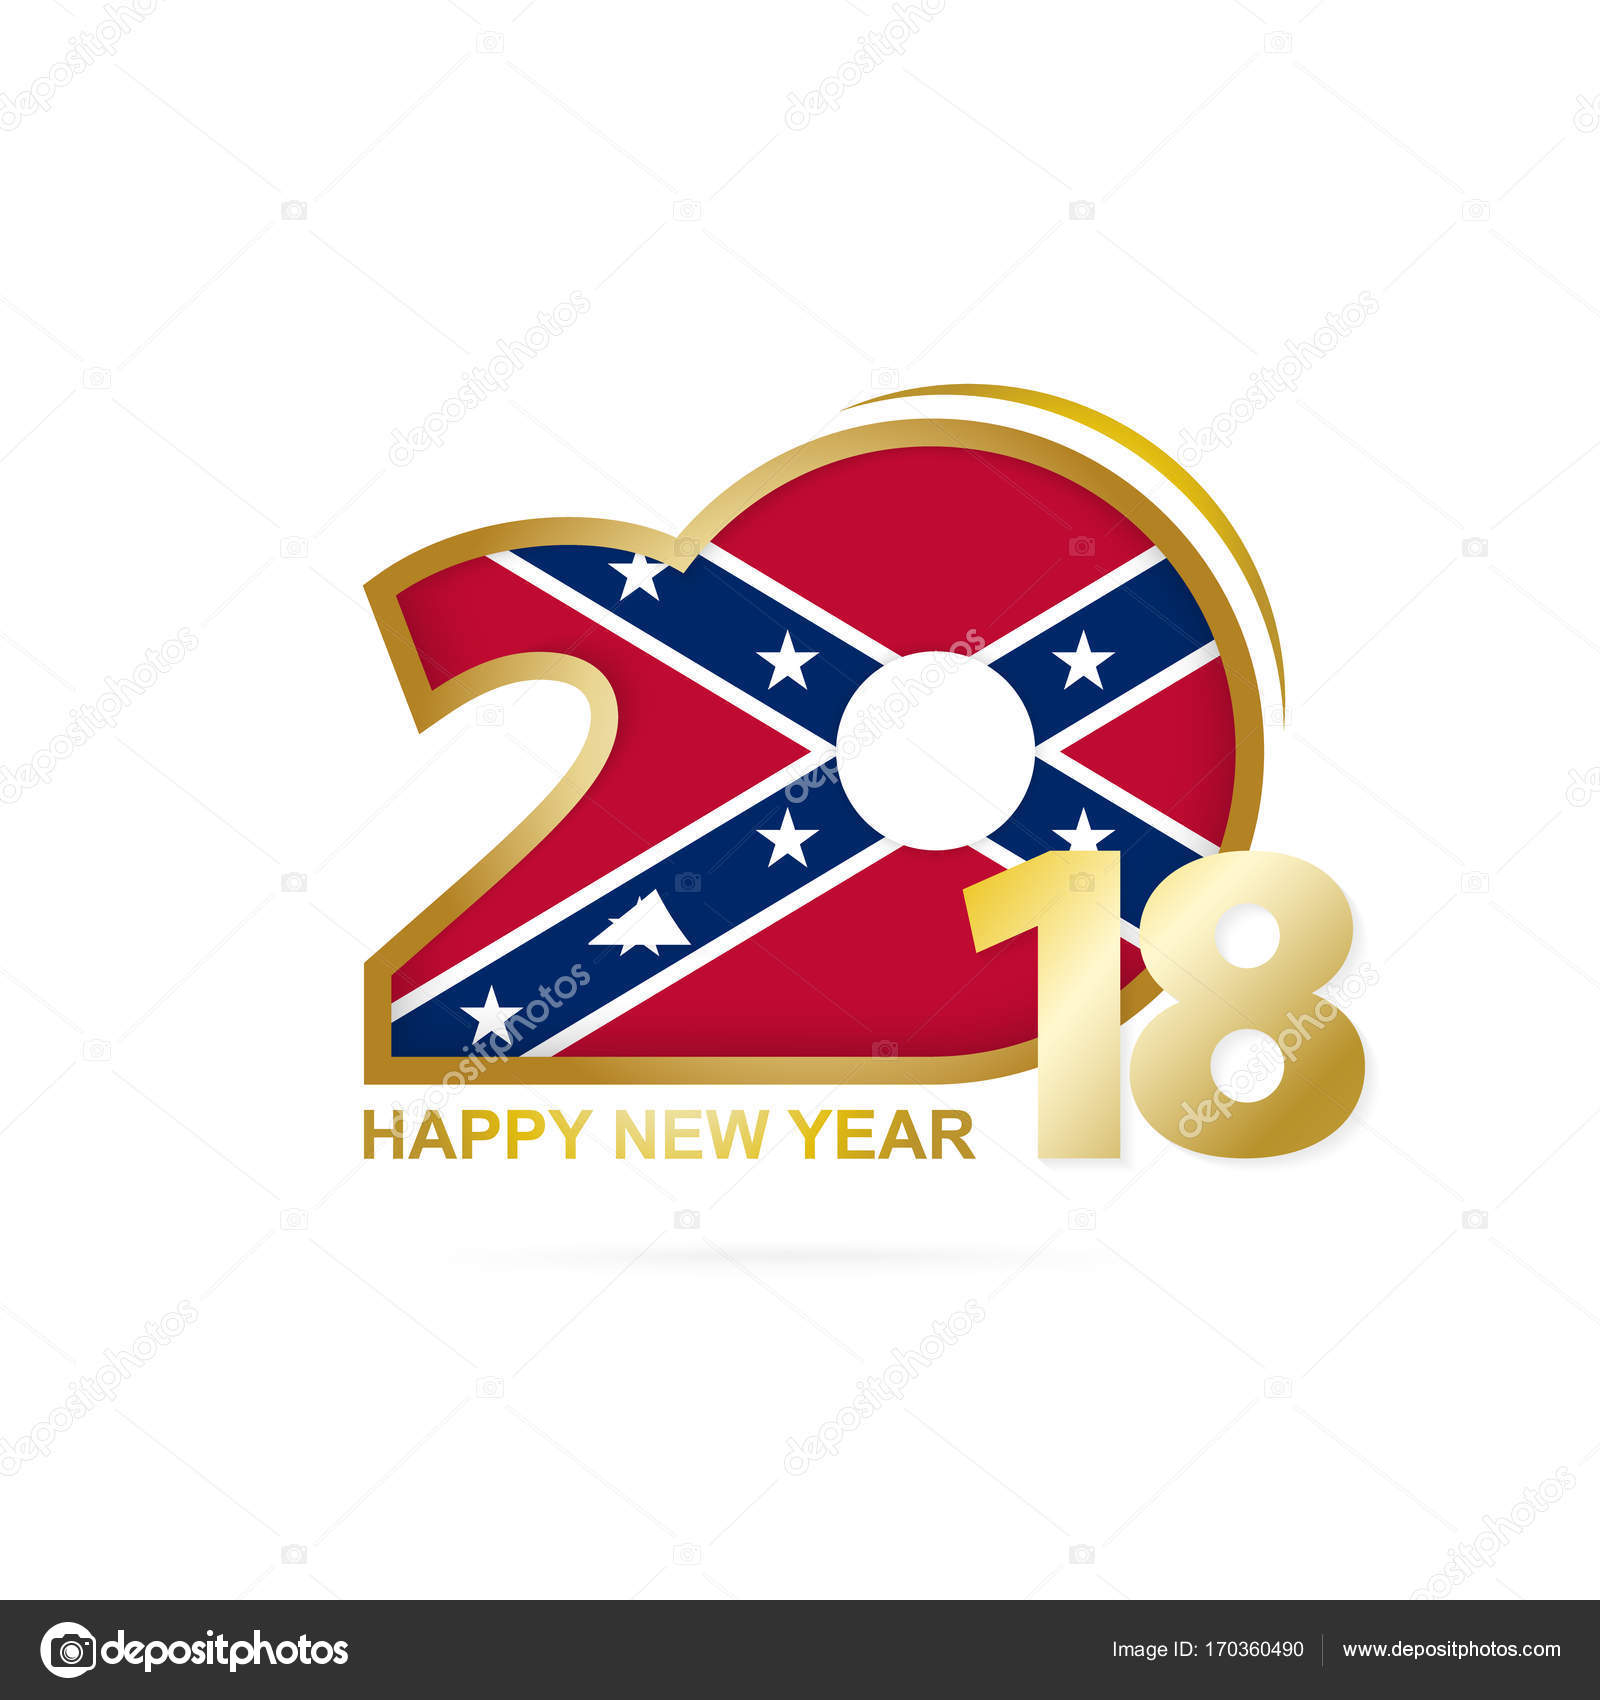 year 2018 with confederate flag pattern happy new year design